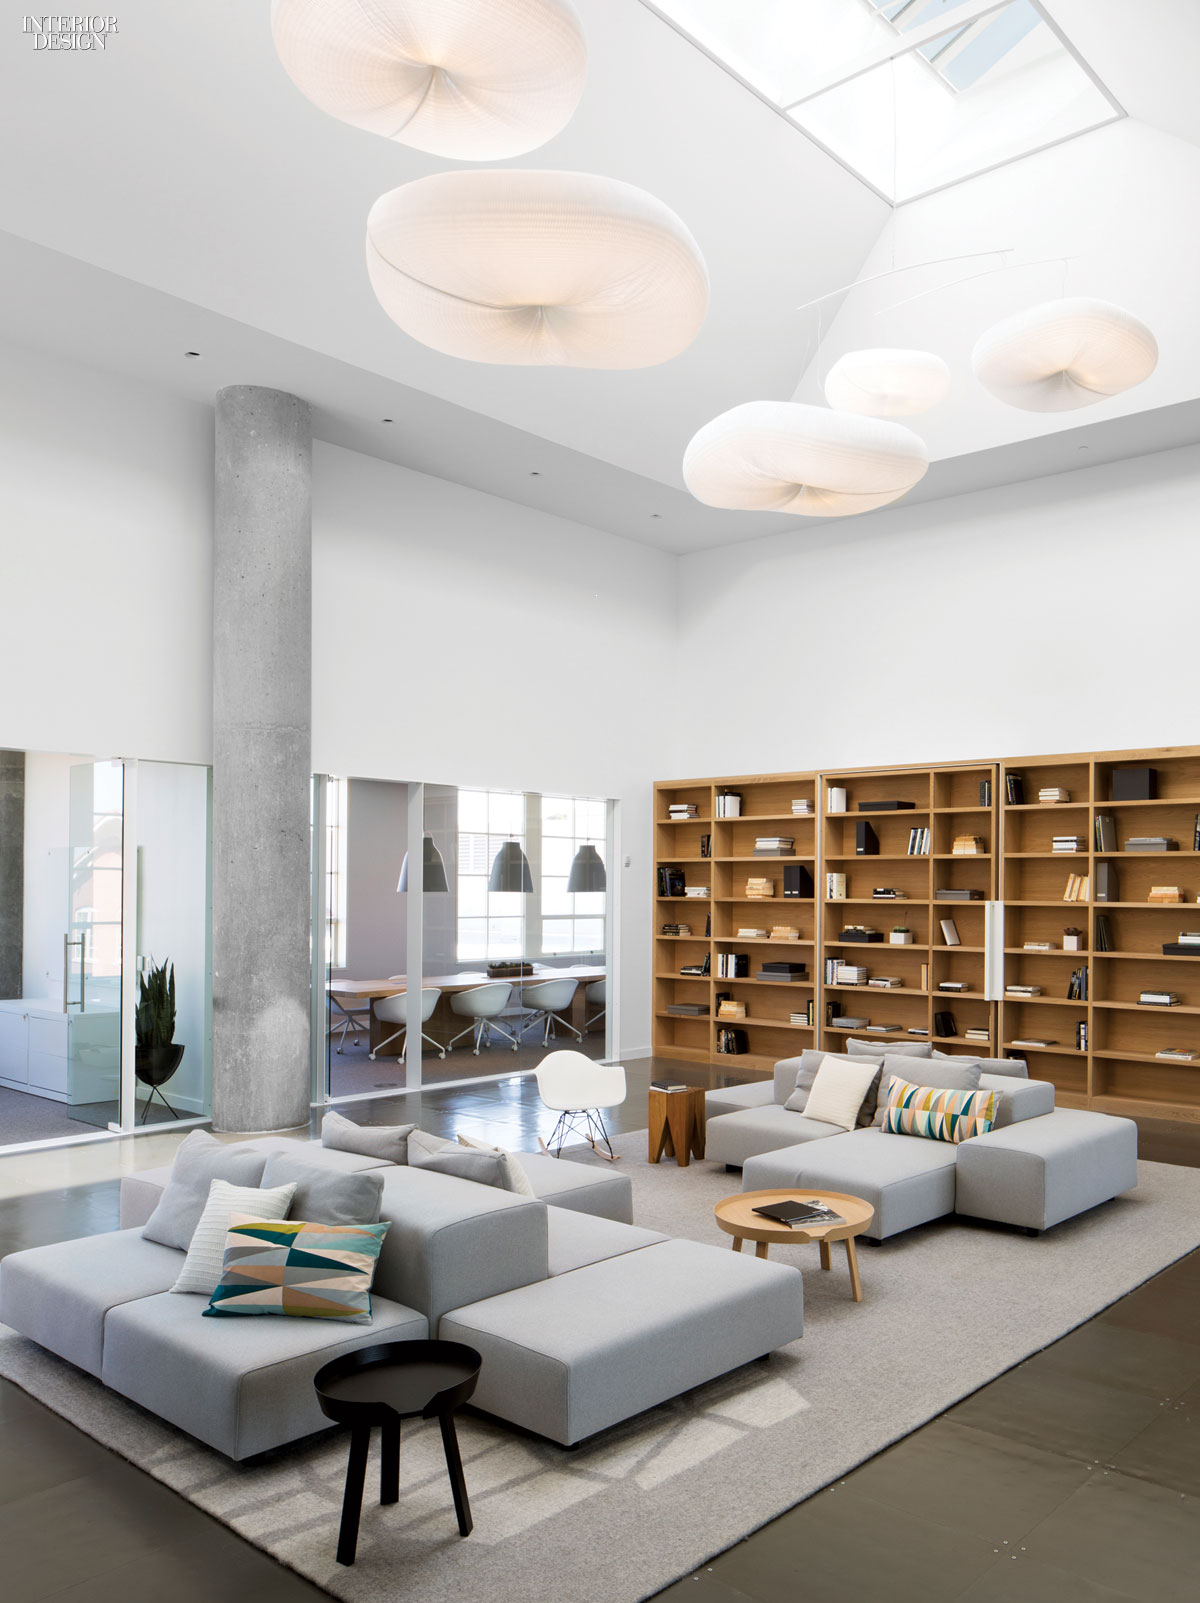 2014 boy winner small corporate office for Service design firms